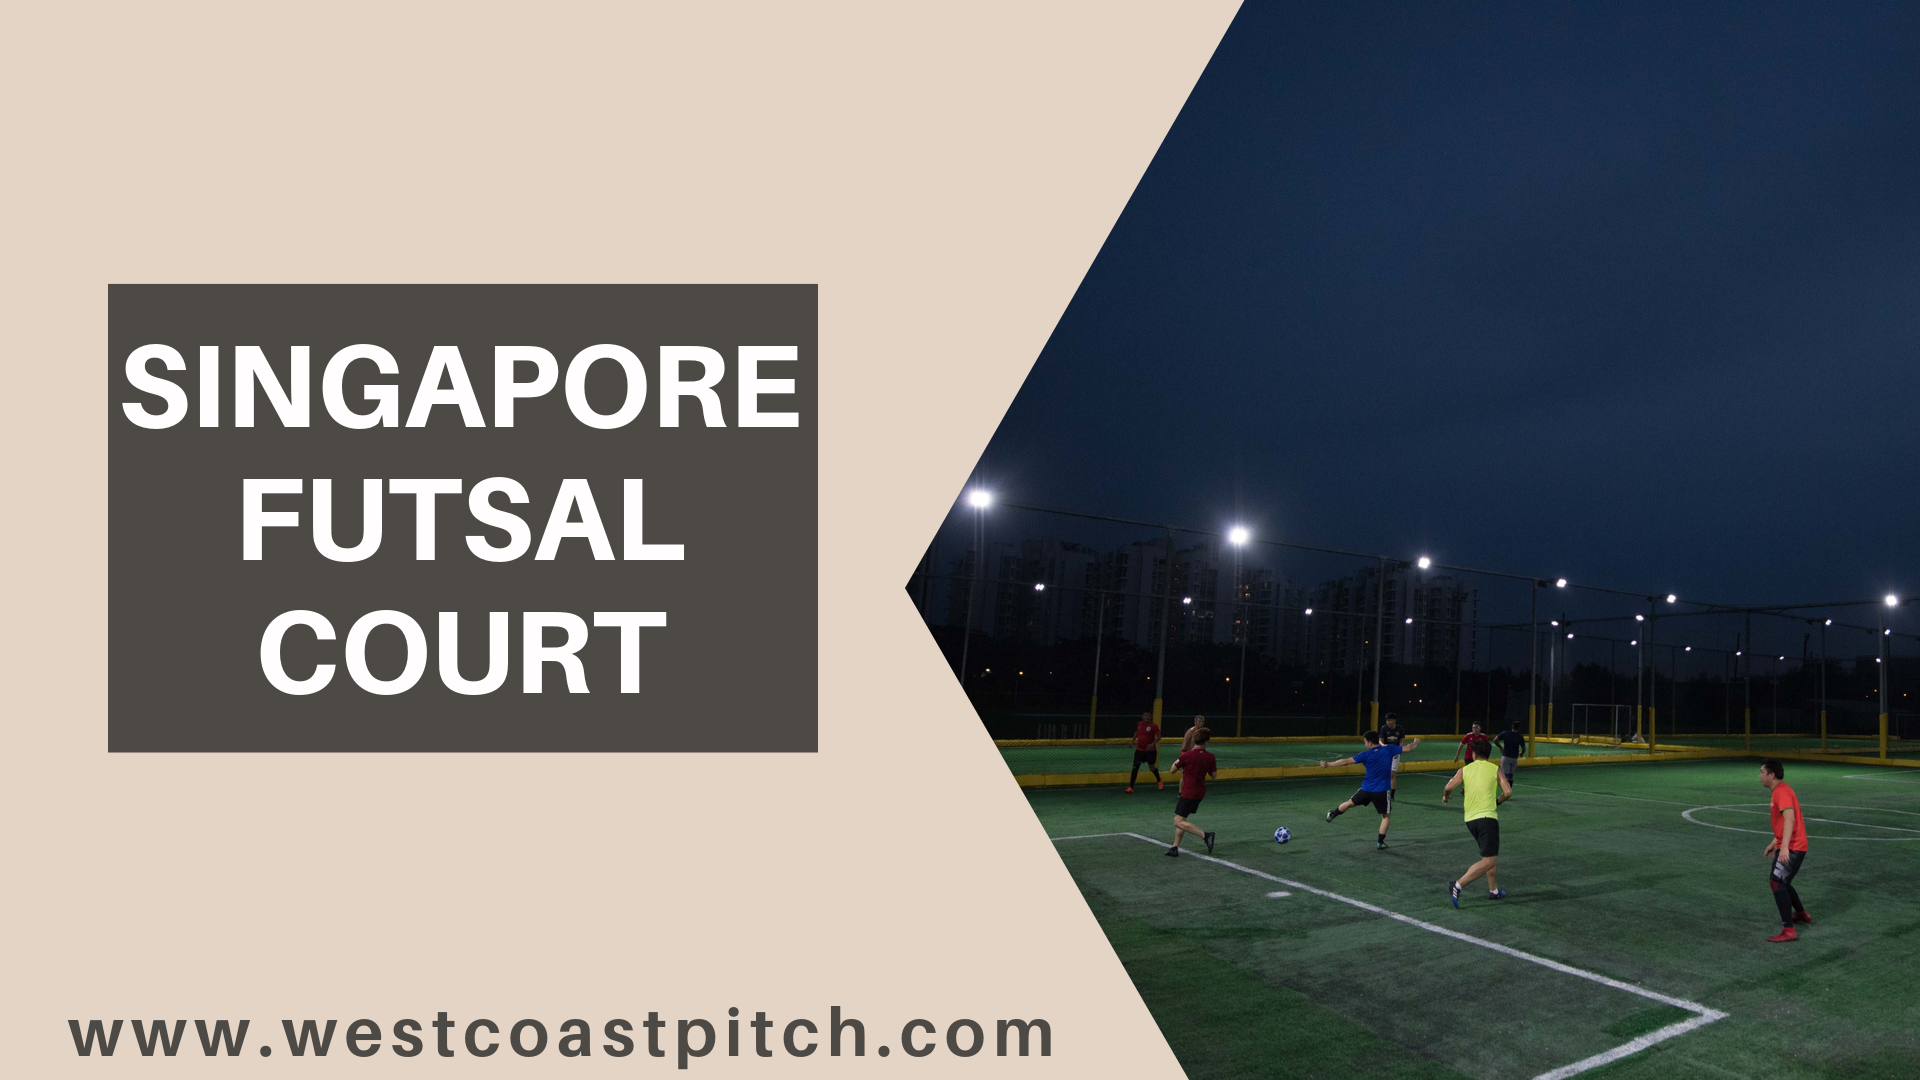 Futsal Game Is Popular Amongst All Ages In Singapore The Popularity Of This Game Is Increasing At A Rapid Speed Futsal Court Soccer Academy Football Pitch